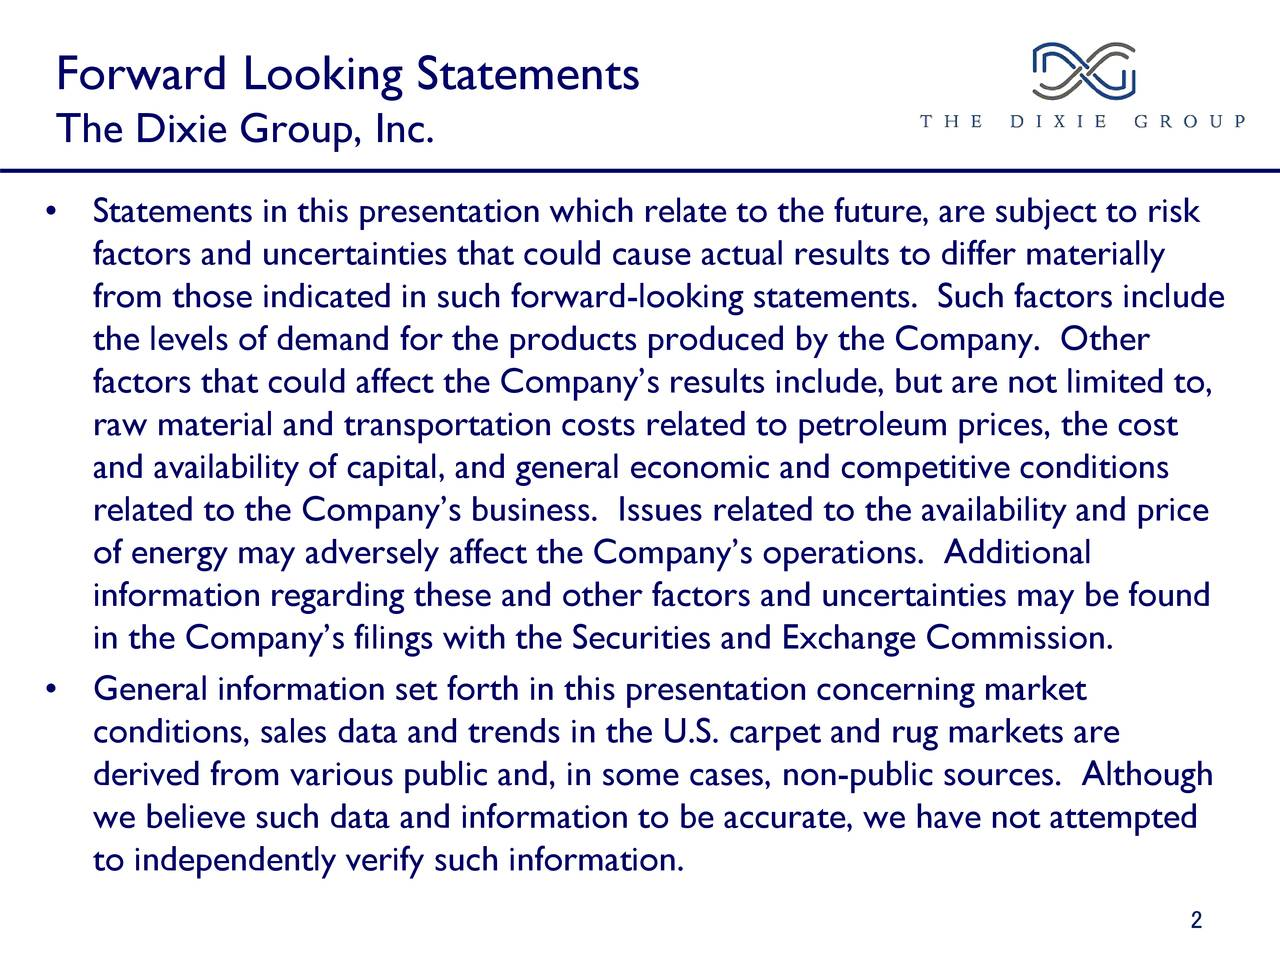 The Dixie Group, Inc. • Statements in this presentation which relate to the future, are subject to risk factors and uncertainties that could cause actual results to differ materially from those indicated in such forward-looking statements. Such factors include the levels of demand for the products produced by the Company. Other factors that could affect the Company's results include, but are not limited to, raw material and transportation costs related to petroleum prices, the cost and availability of capital, and general economic and competitive conditions related to the Company's business. Issues related to the availability and price of energy may adversely affect the Company's operations. Additional information regarding these and other factors and uncertainties may be found in the Company's filings with the Securities and Exchange Commission. • General information set forth in this presentation concerning market conditions, sales data and trends in the U.S. carpet and rug markets are derived from various public and, in some cases, non-public sources. Although we believe such data and information to be accurate, we have not attempted to independently verify such information. 2